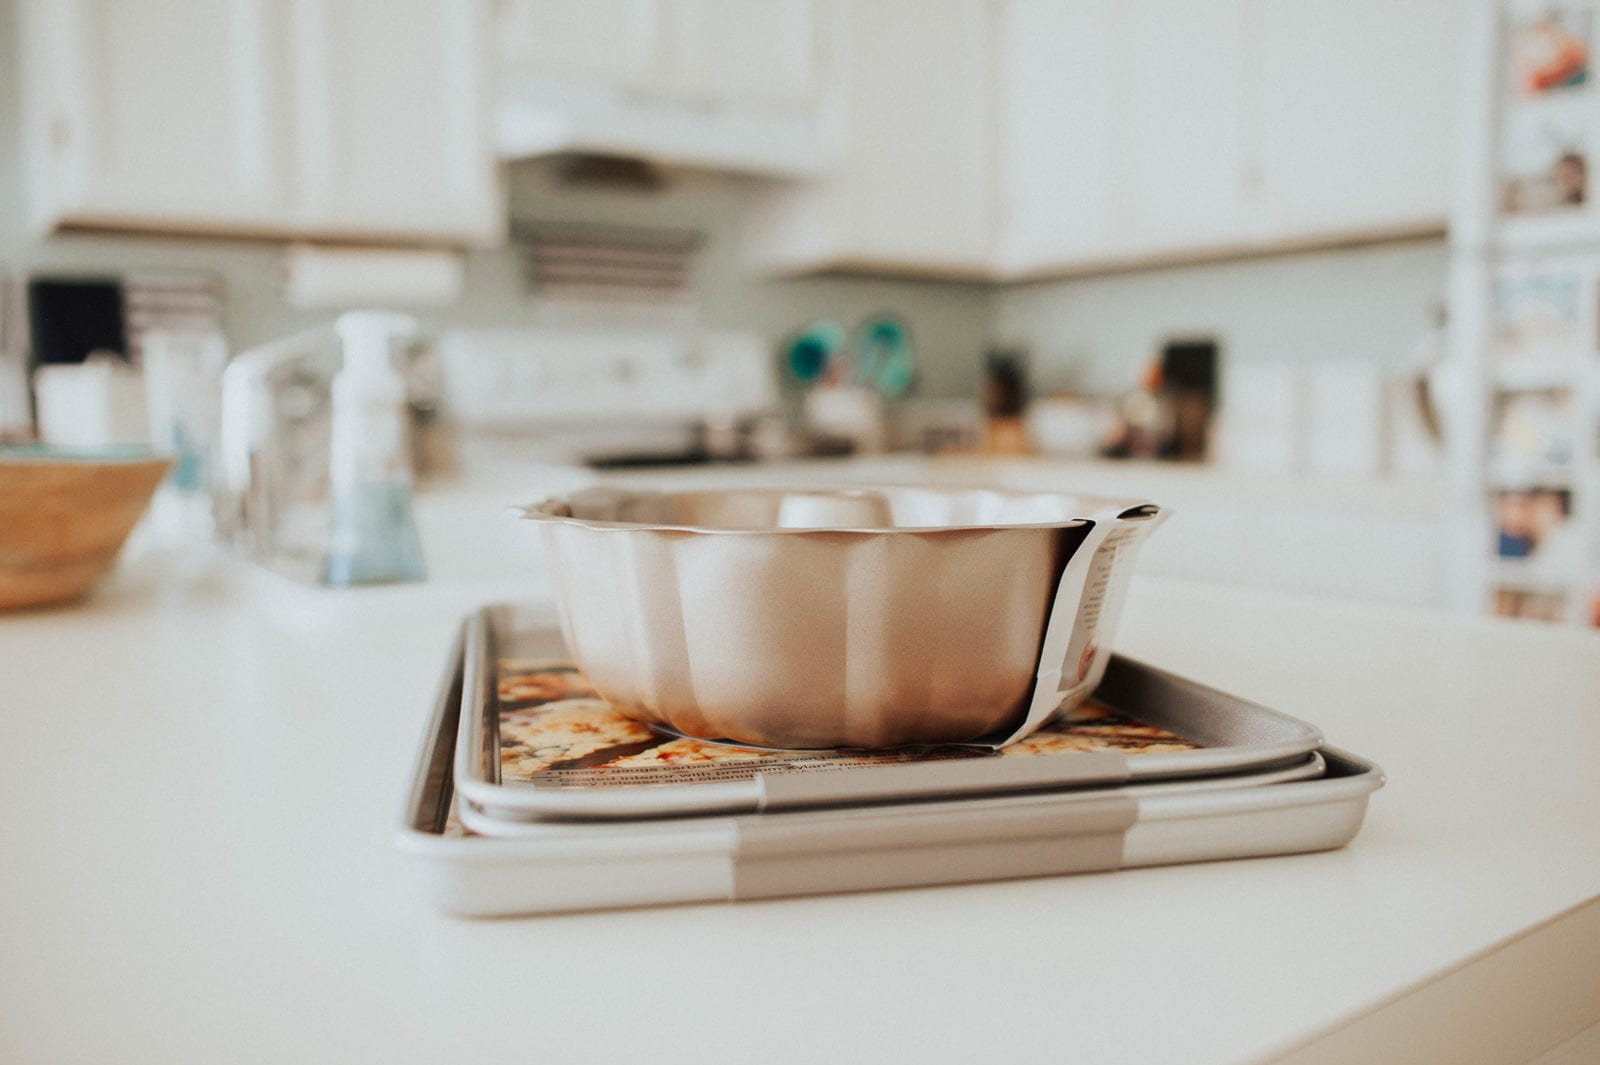 Pan and trays